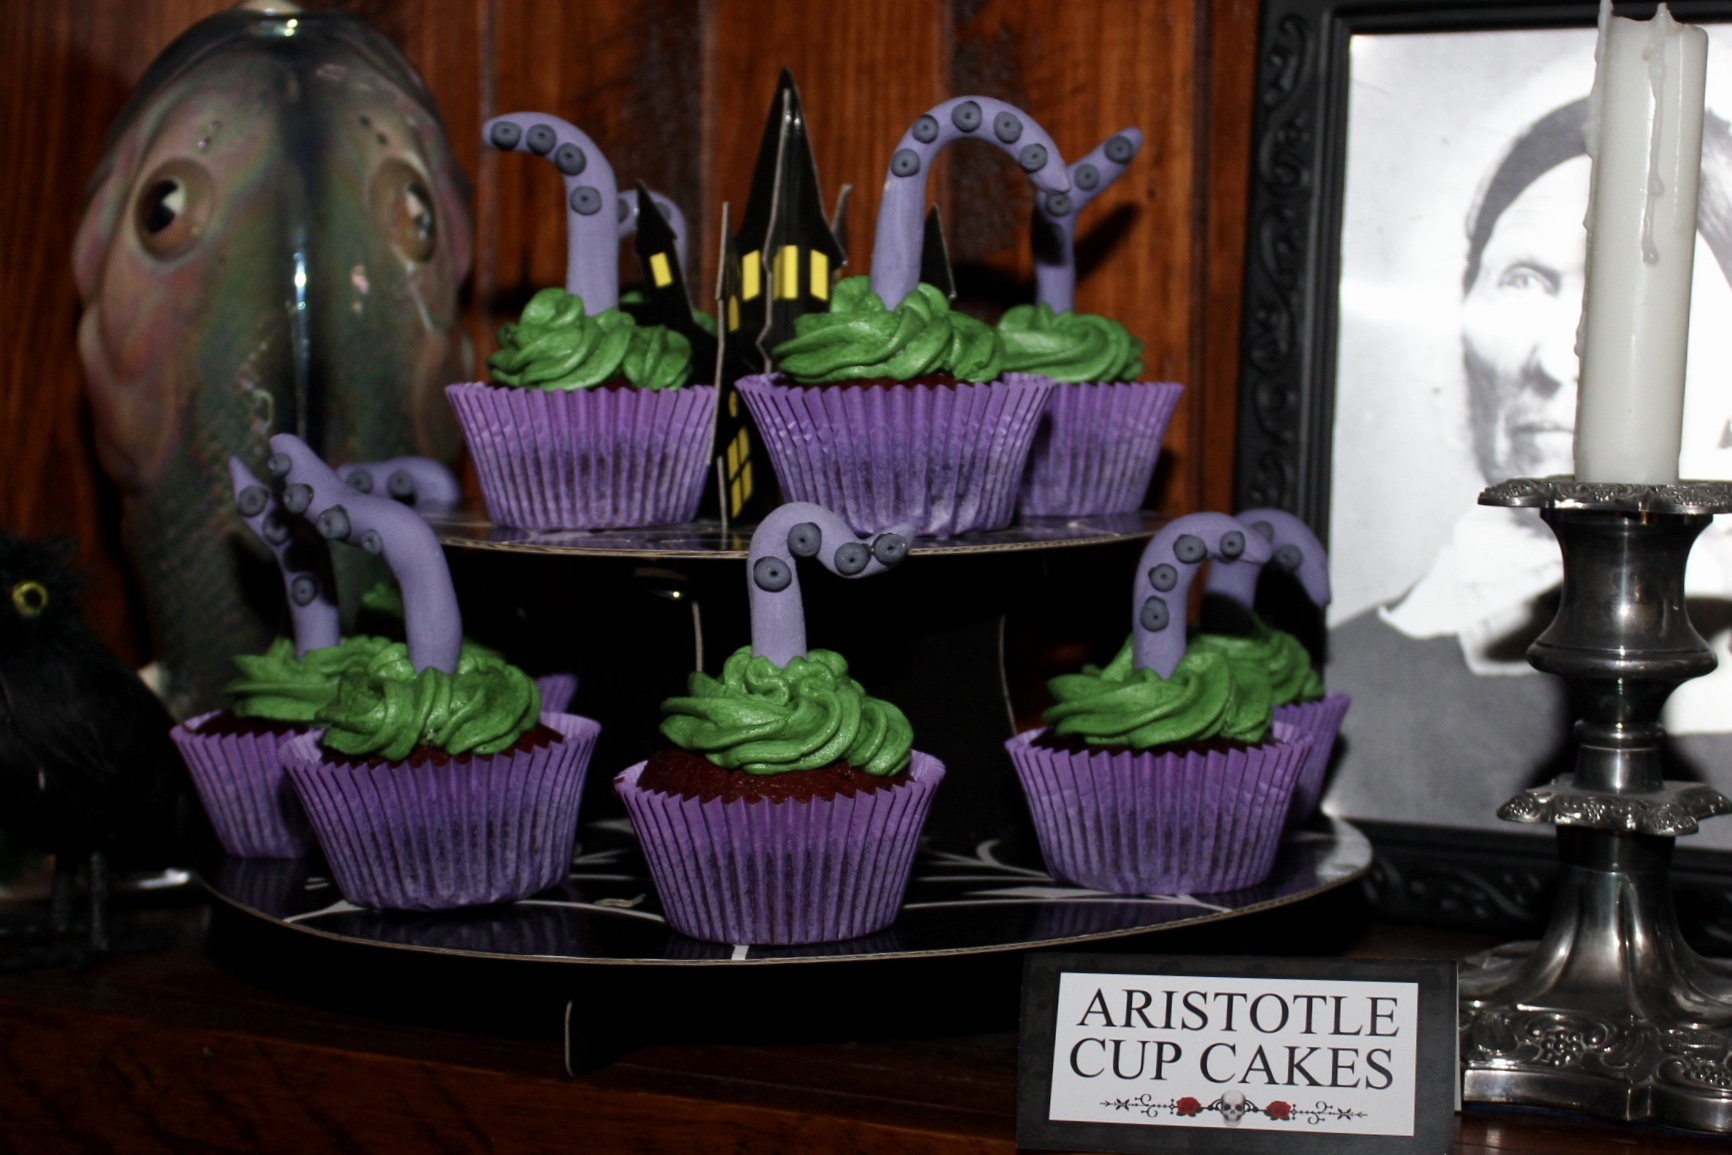 The Addams Family Cup Cakes - Aristotle